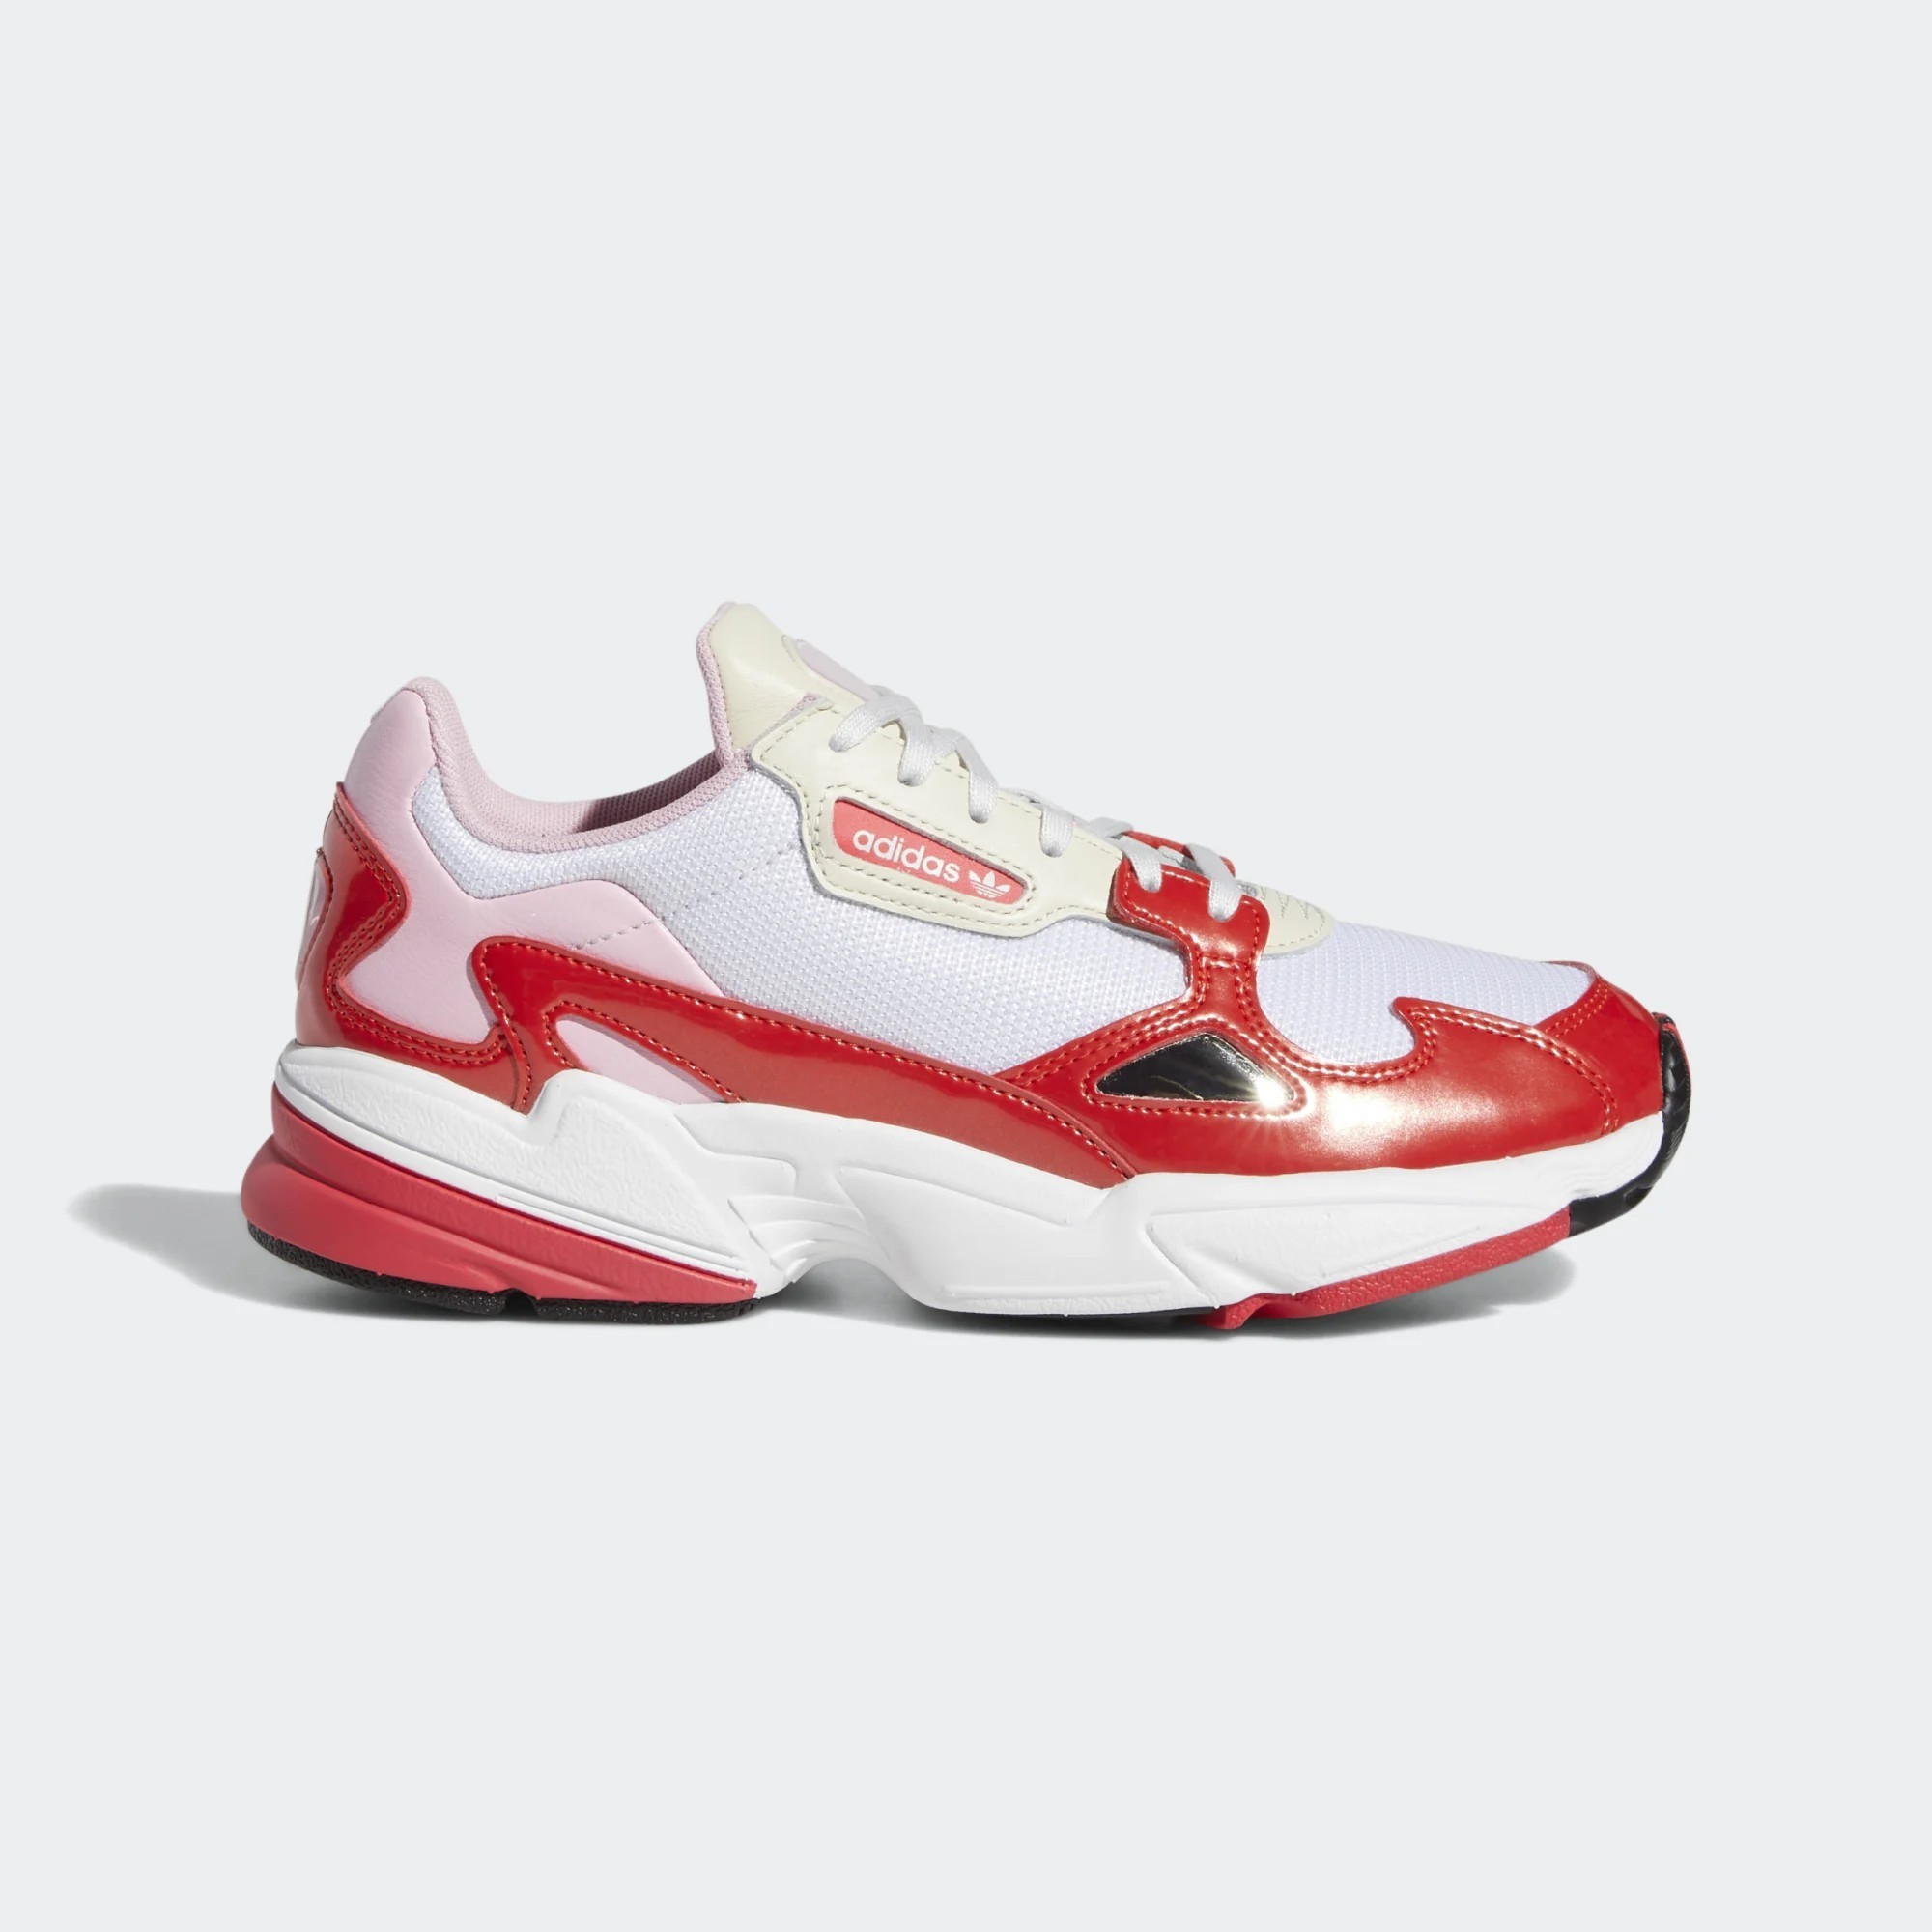 Adidas Femme Originals Falcon Chaussures Blanche/Rouge EE3830